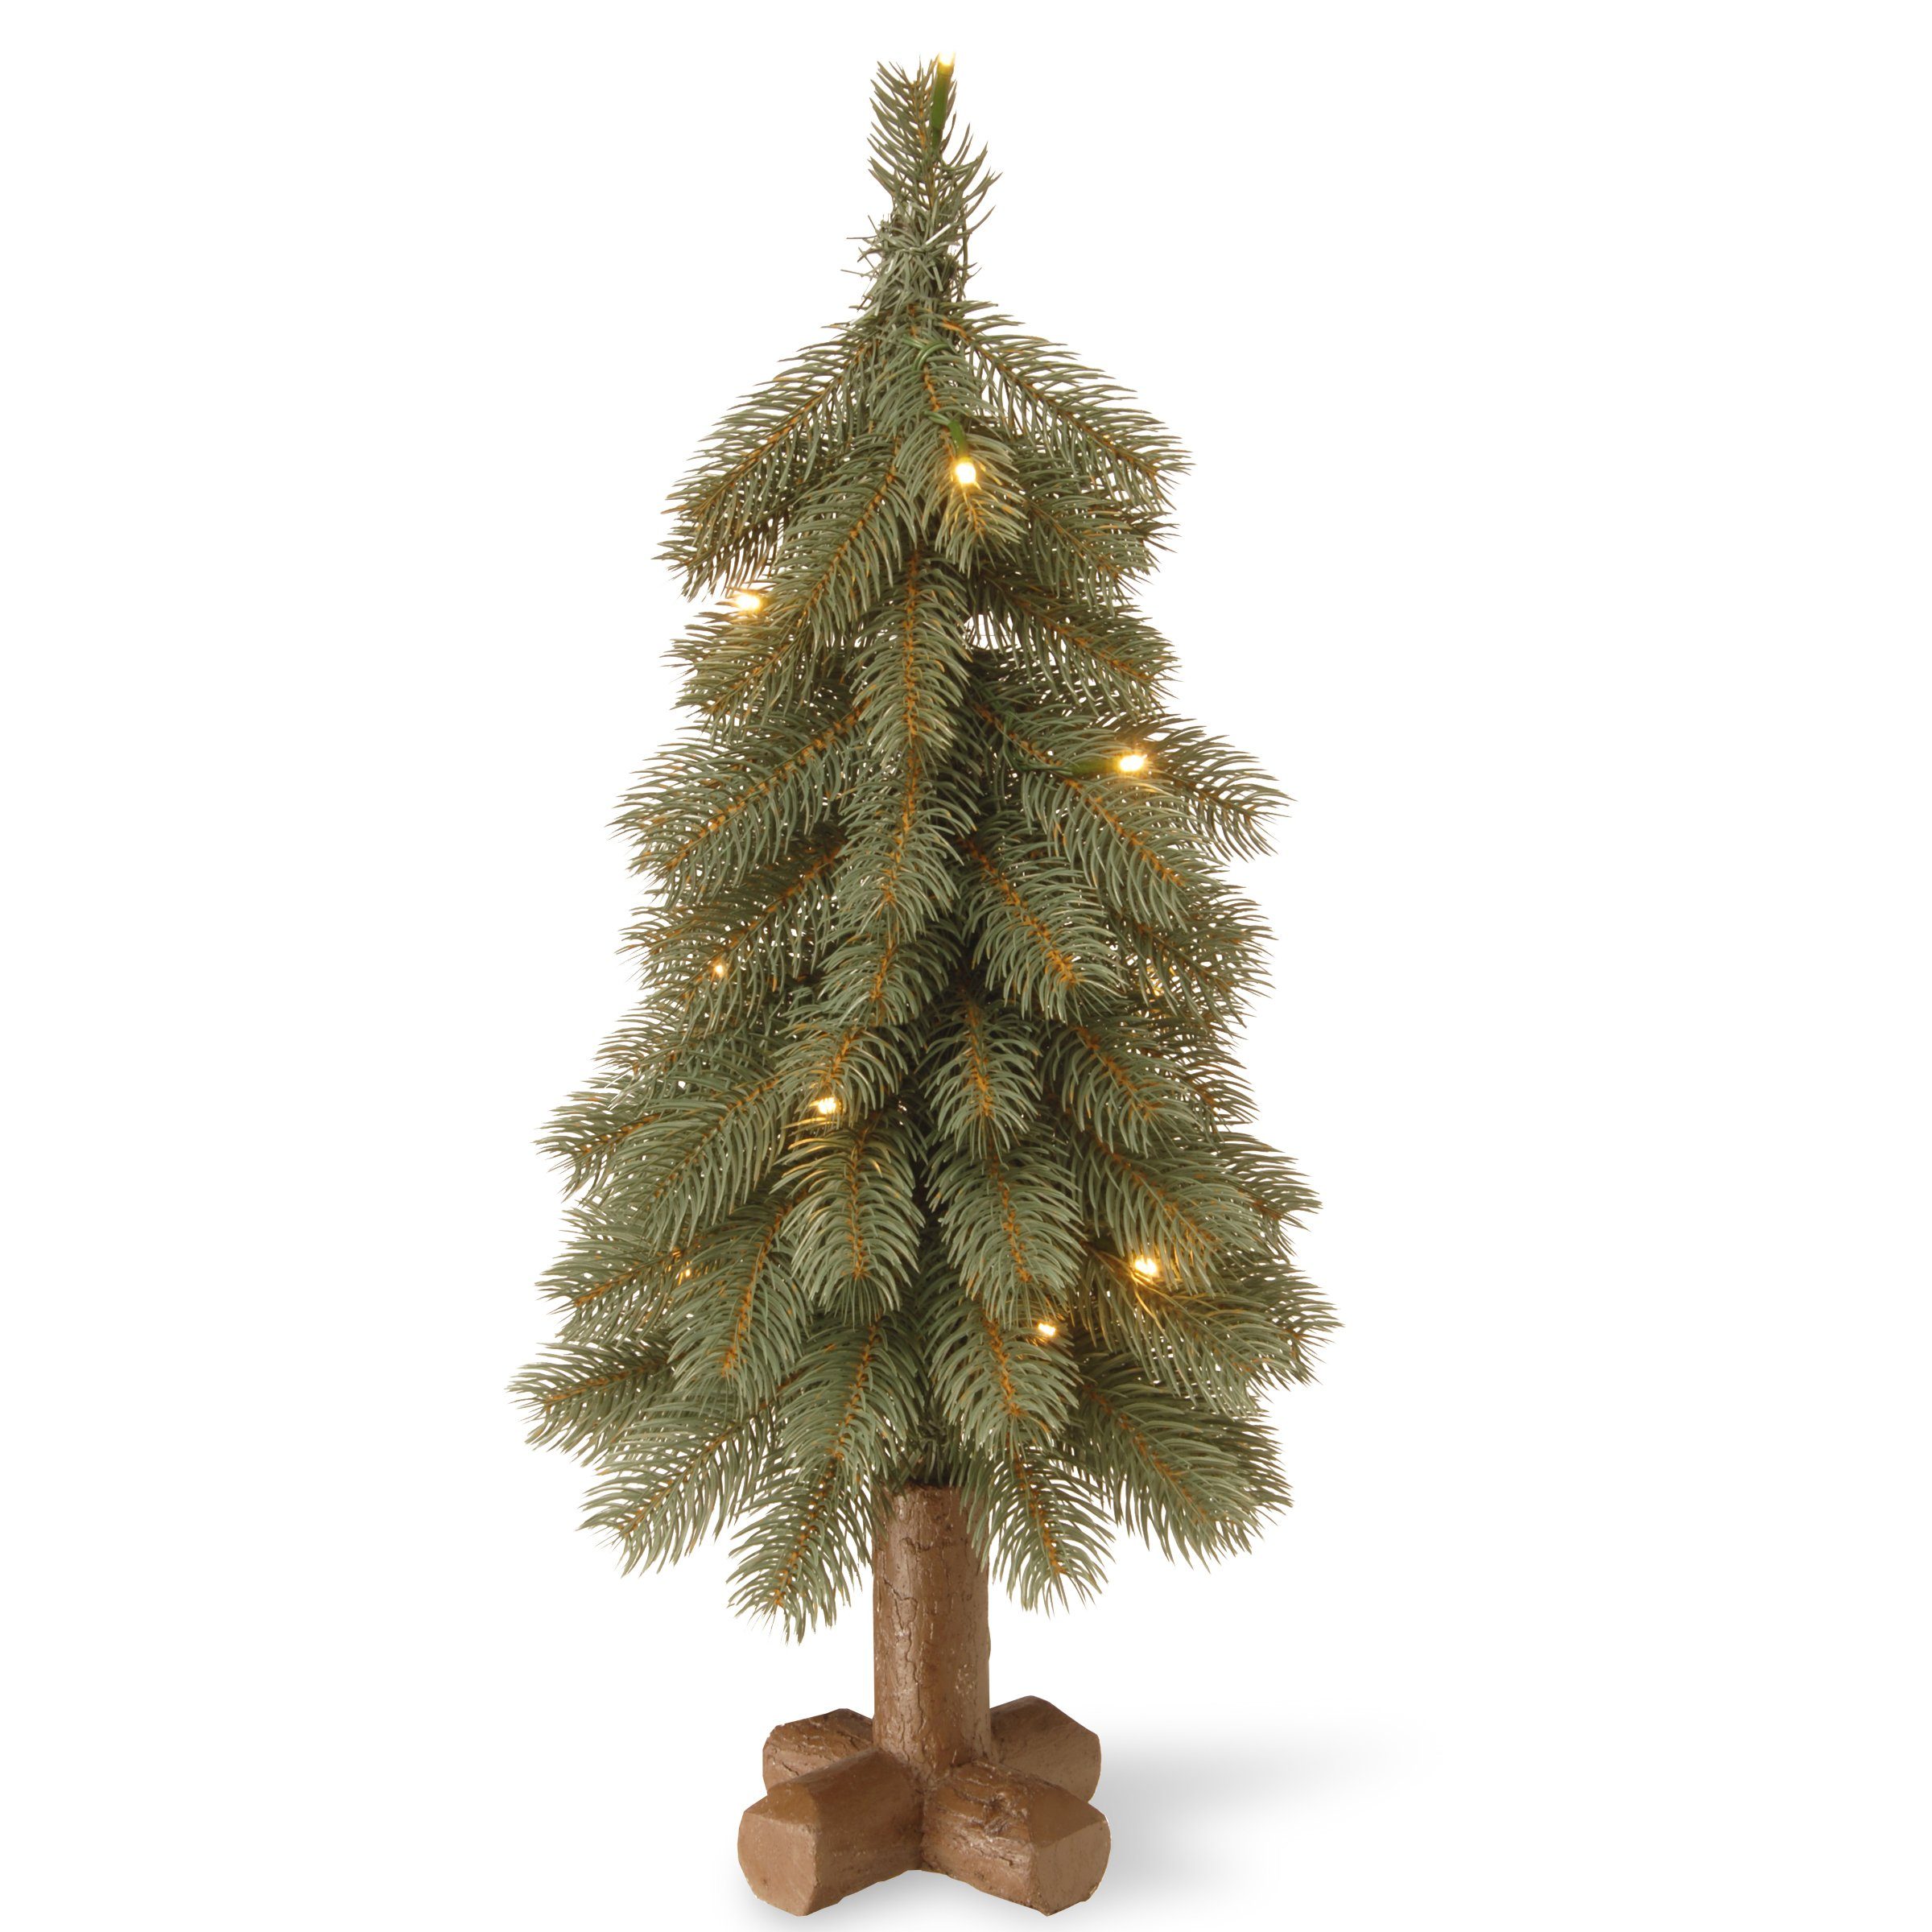 National Tree 24 Inch Feel Real Bayberry Spruce Blue Tree with 15 Warm White Battery Operated LED Lights with Timer in Cross Faux Wood Base (PEBYB1-319-24B1)